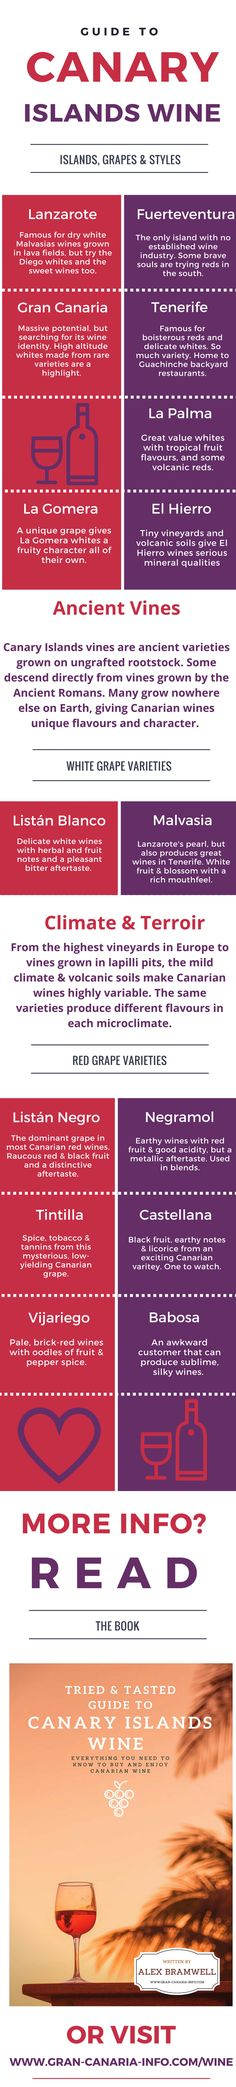 Infographic with detailed information about the wine and grapes of the Canary Islands including Tenerife, Lanzarote, Gran Canaria, La Gomera, La Palma & El Hierro